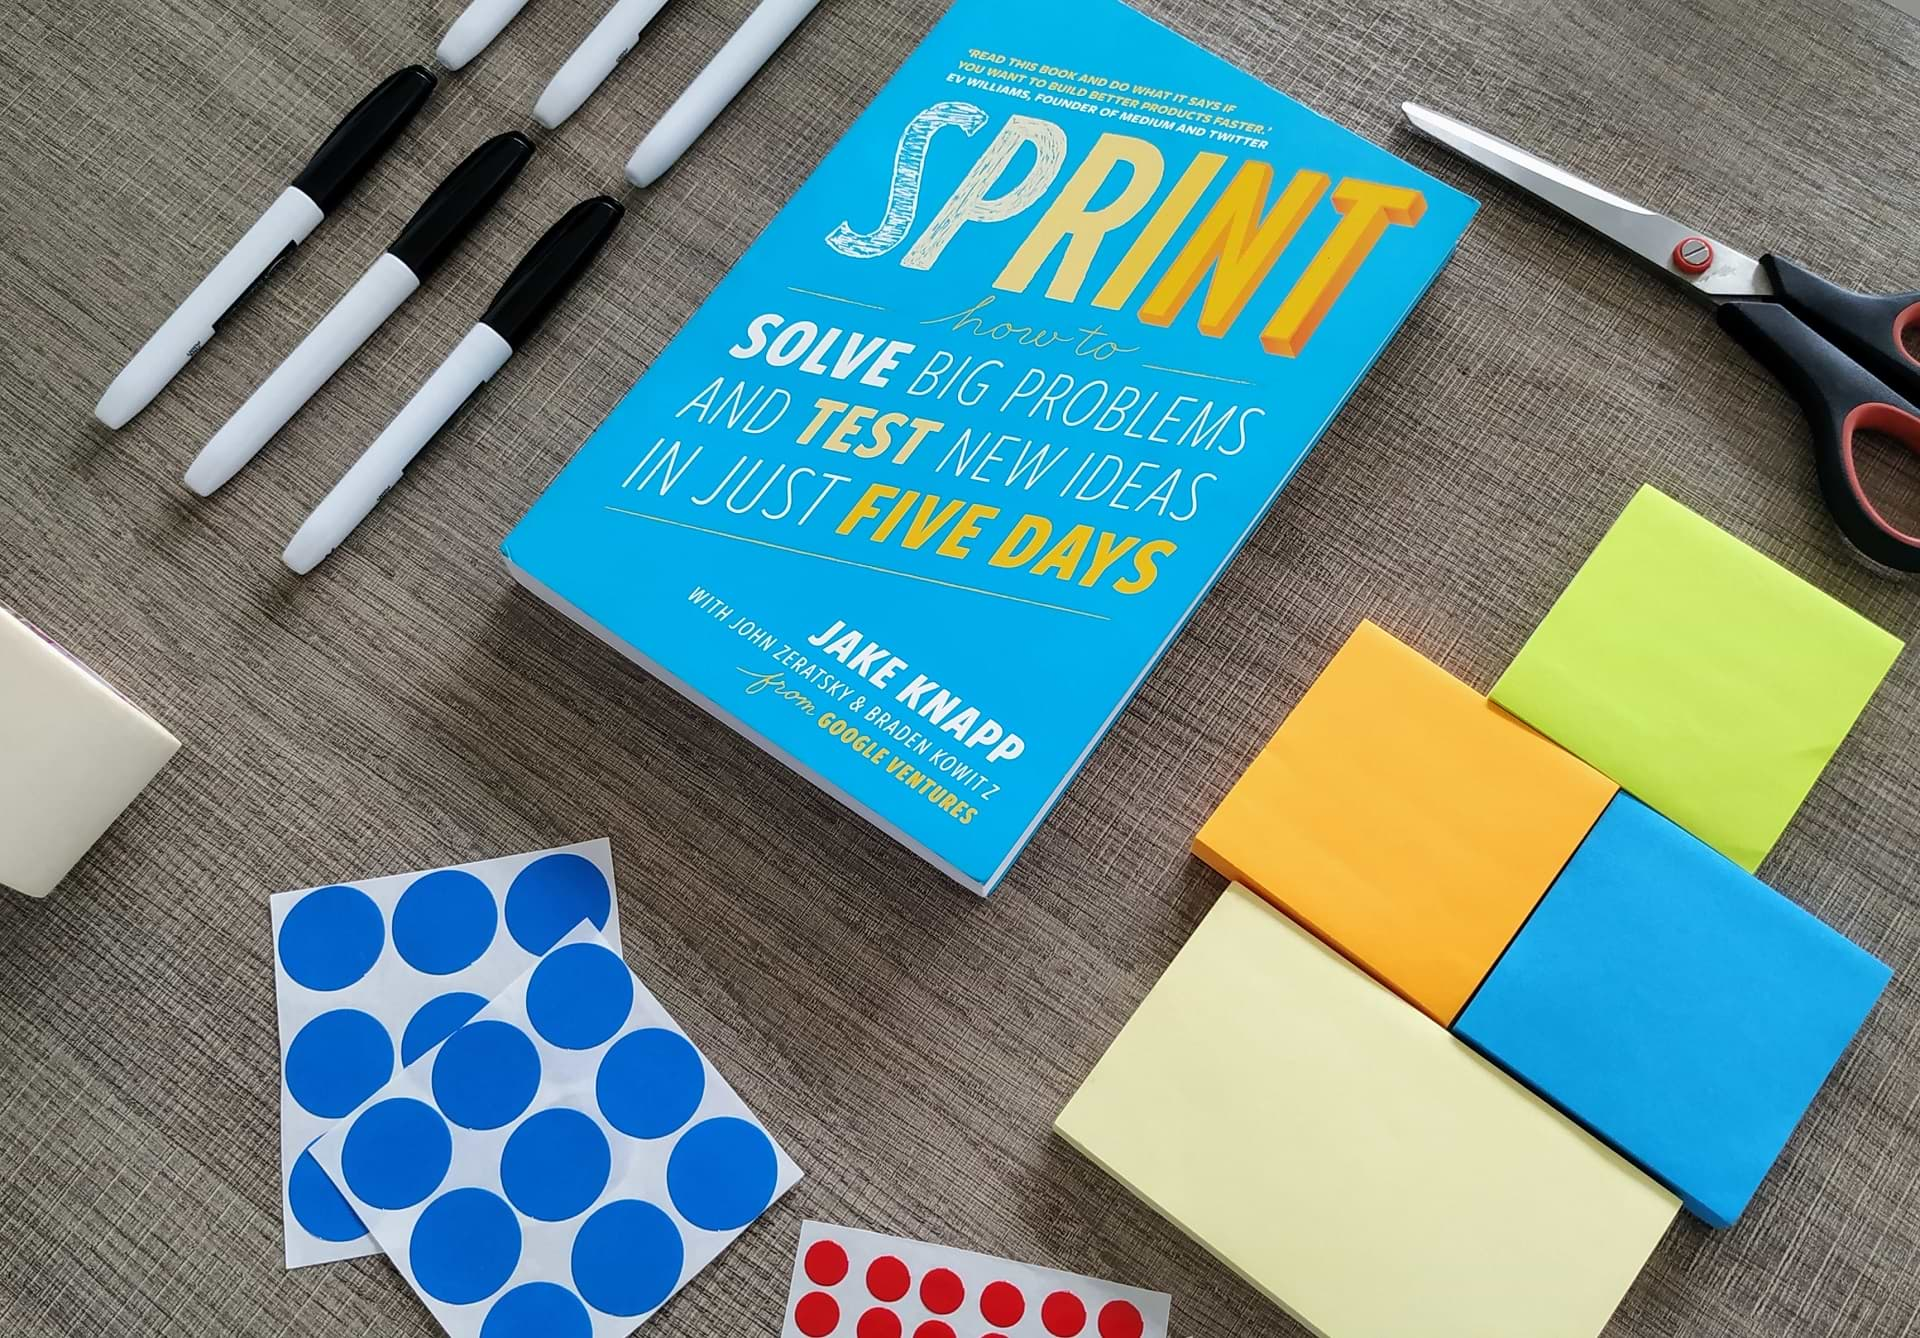 Atelier Design Sprint Toulouse